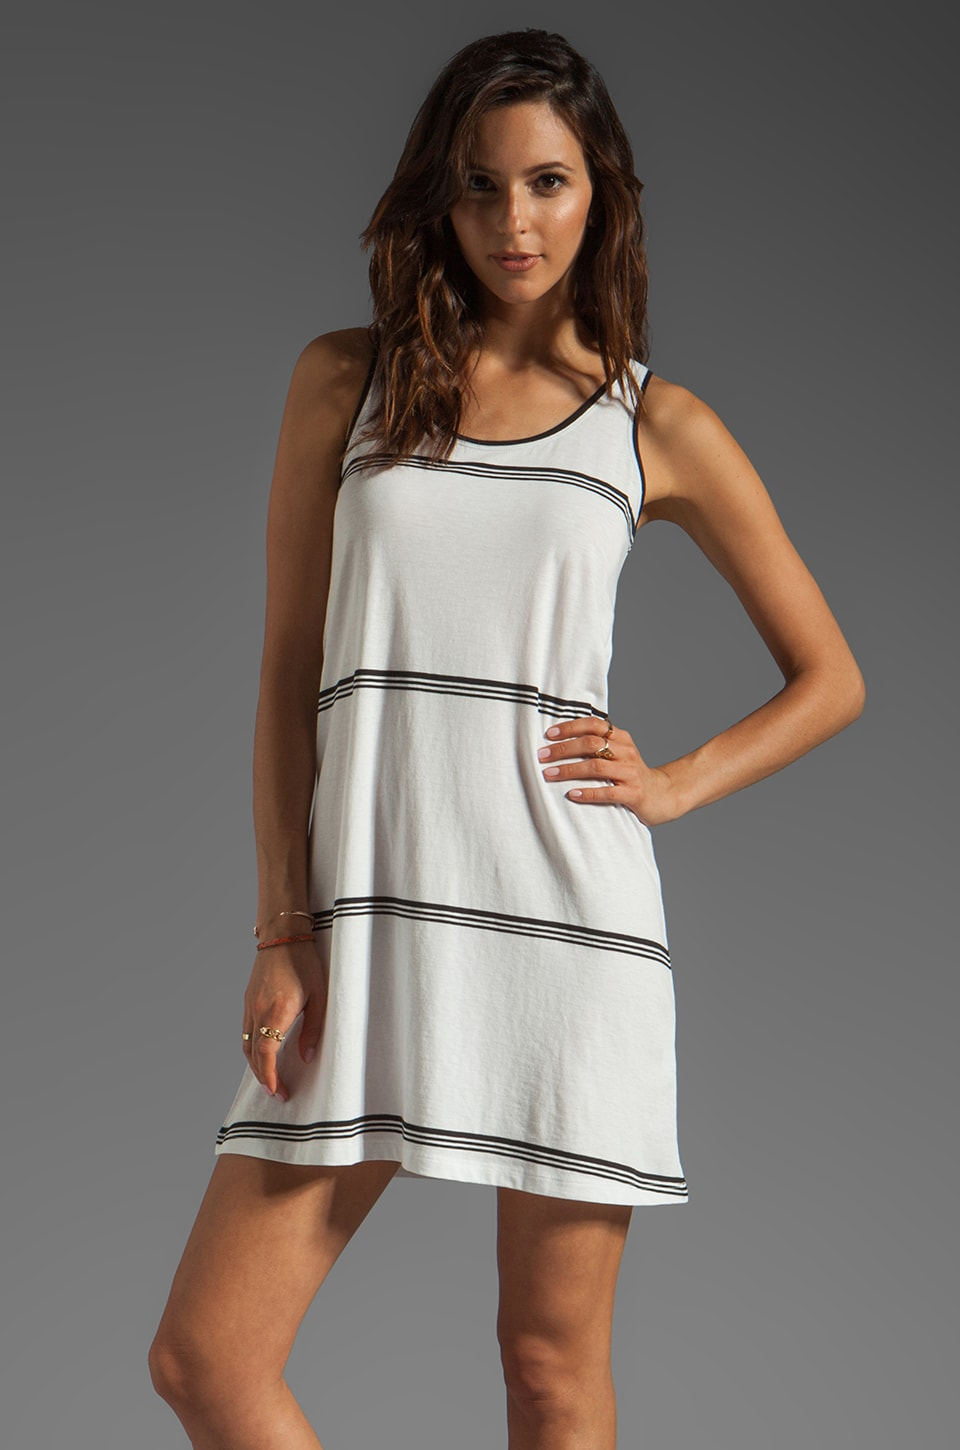 DemyLee Eden Space Stripe Tank Dress in White/Black